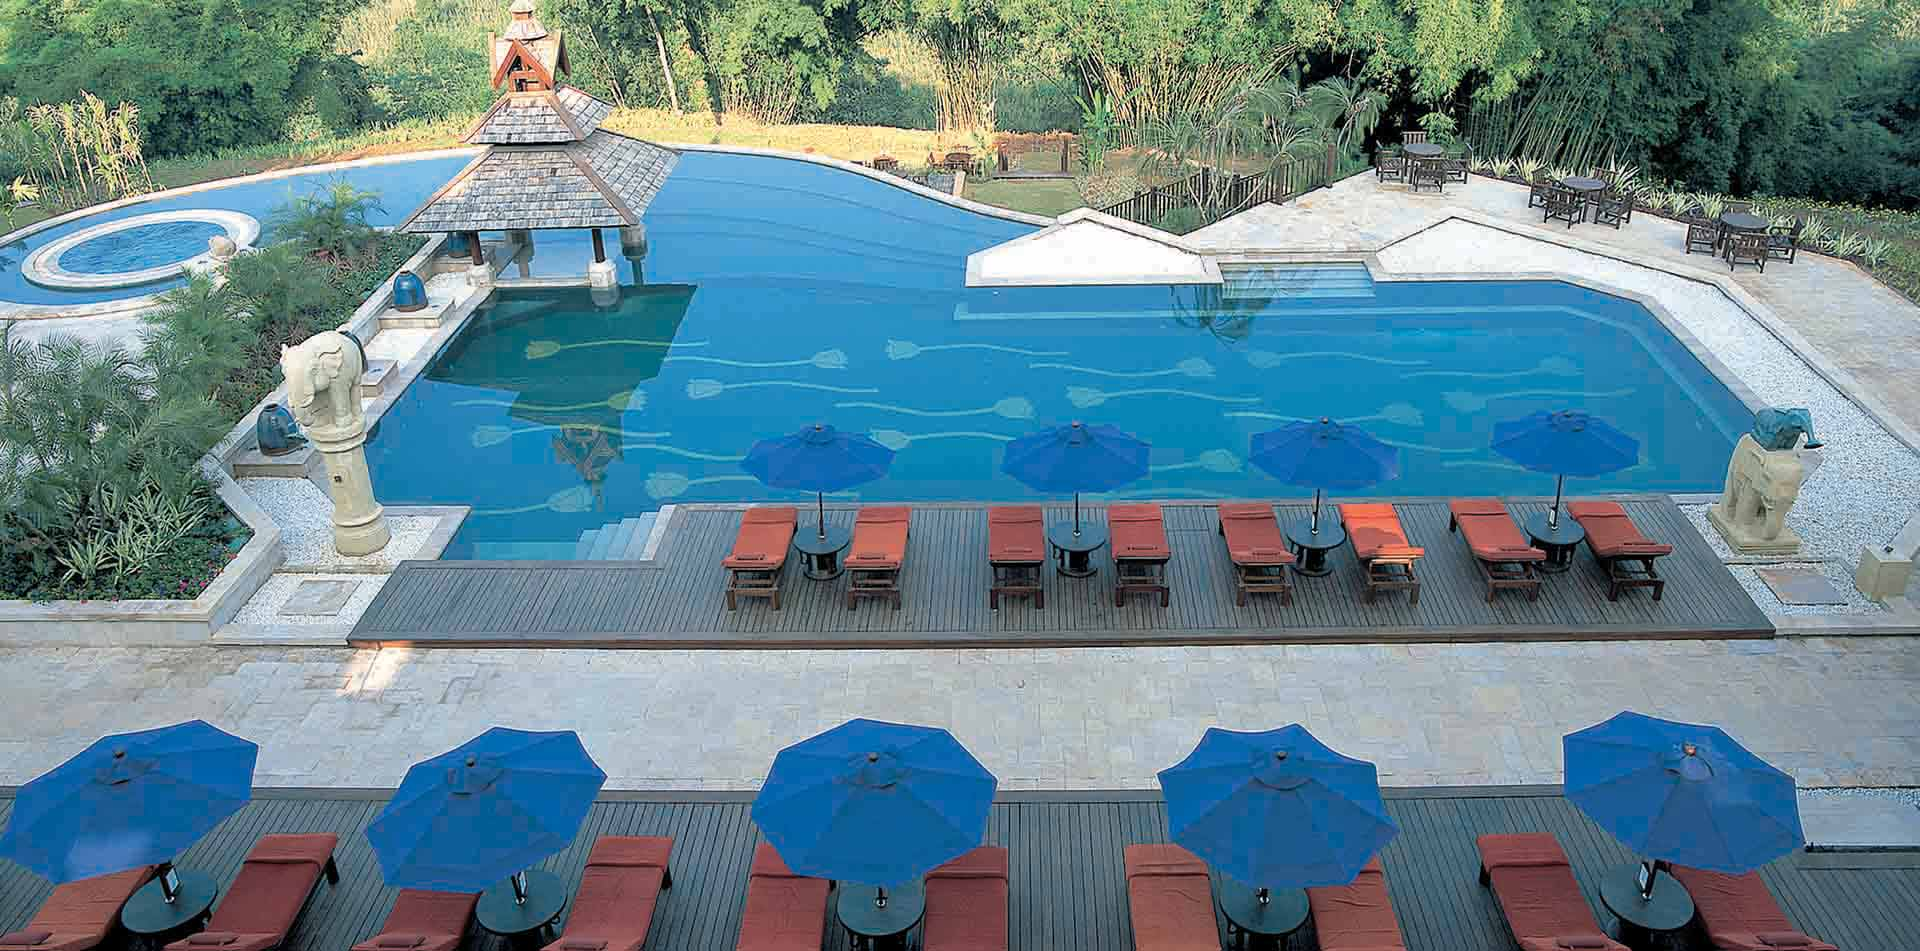 Pool at the Anantara Hotel, Thailand